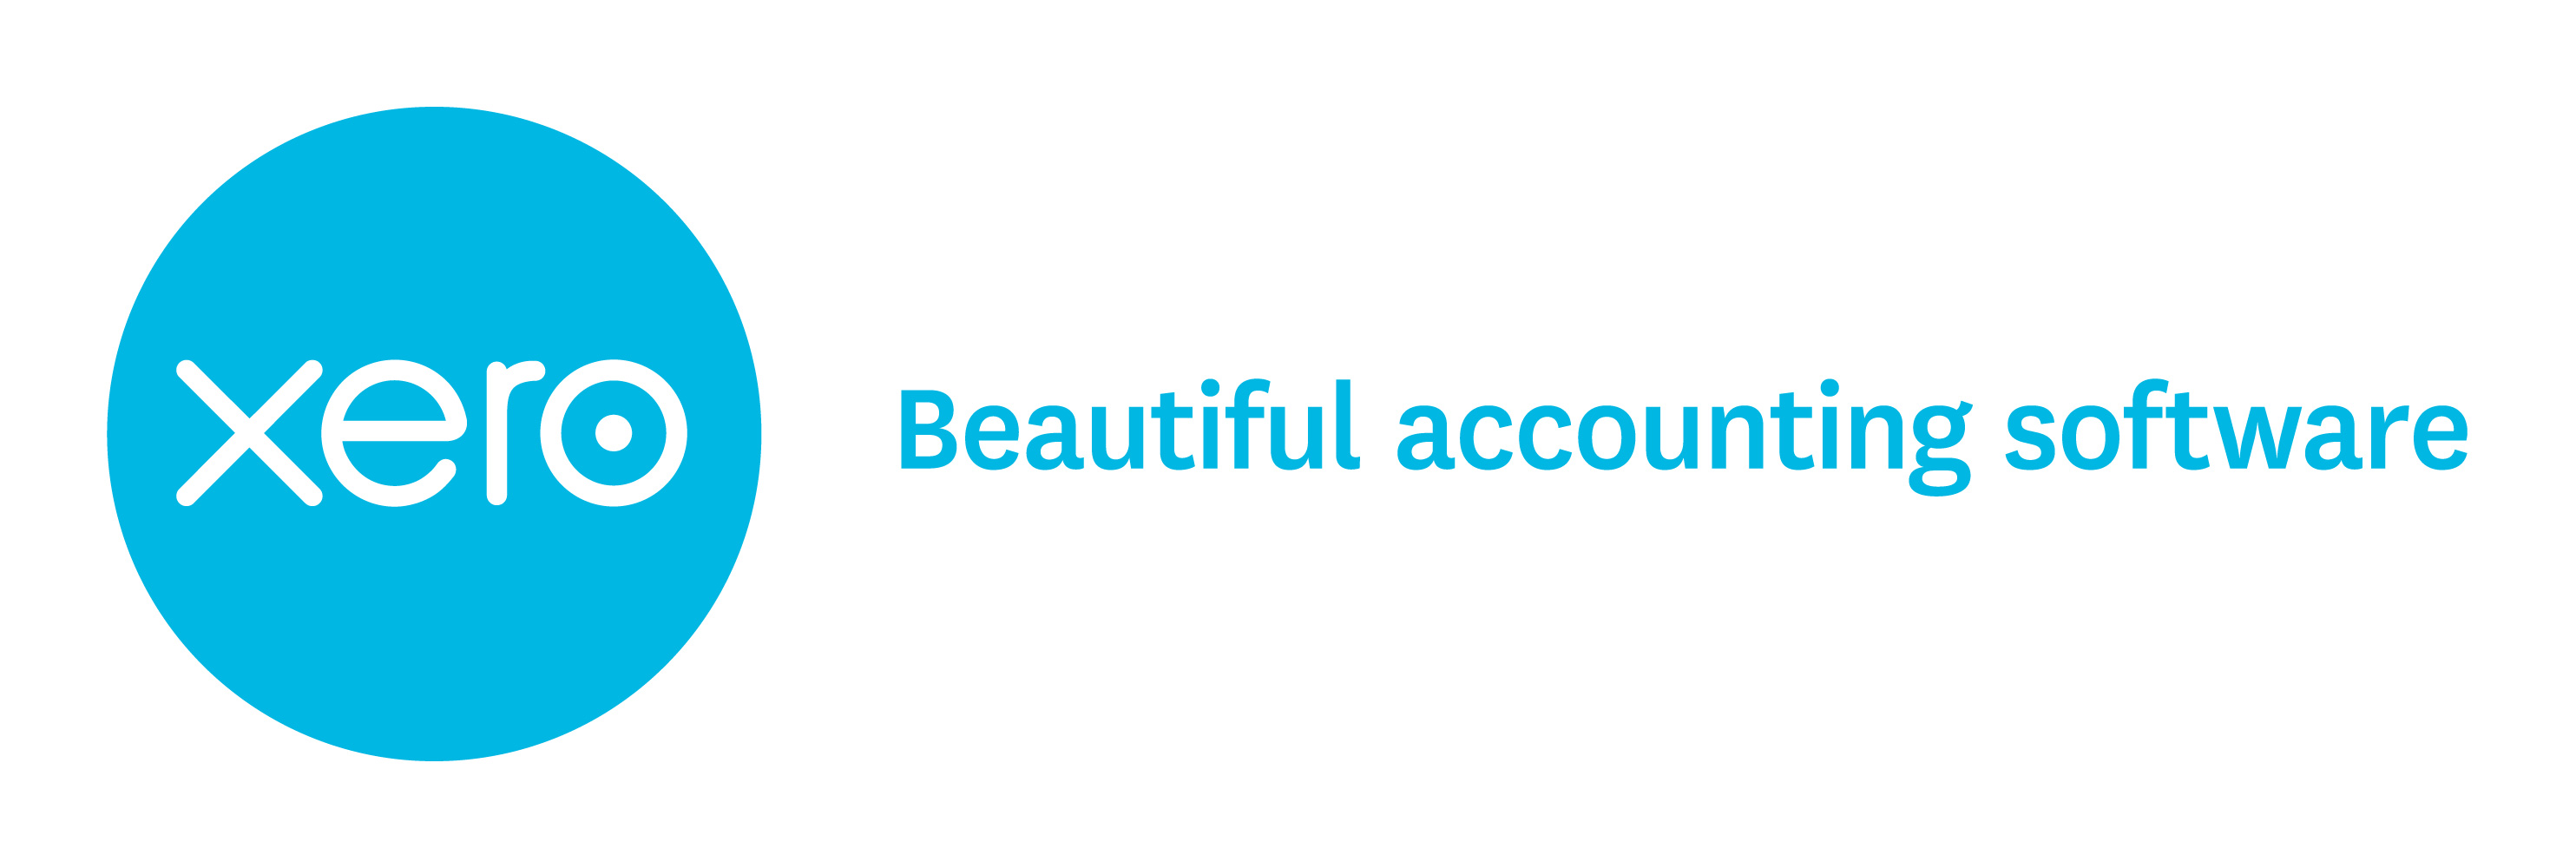 UGS Accountants use Xeros Beautiful Accounting Software